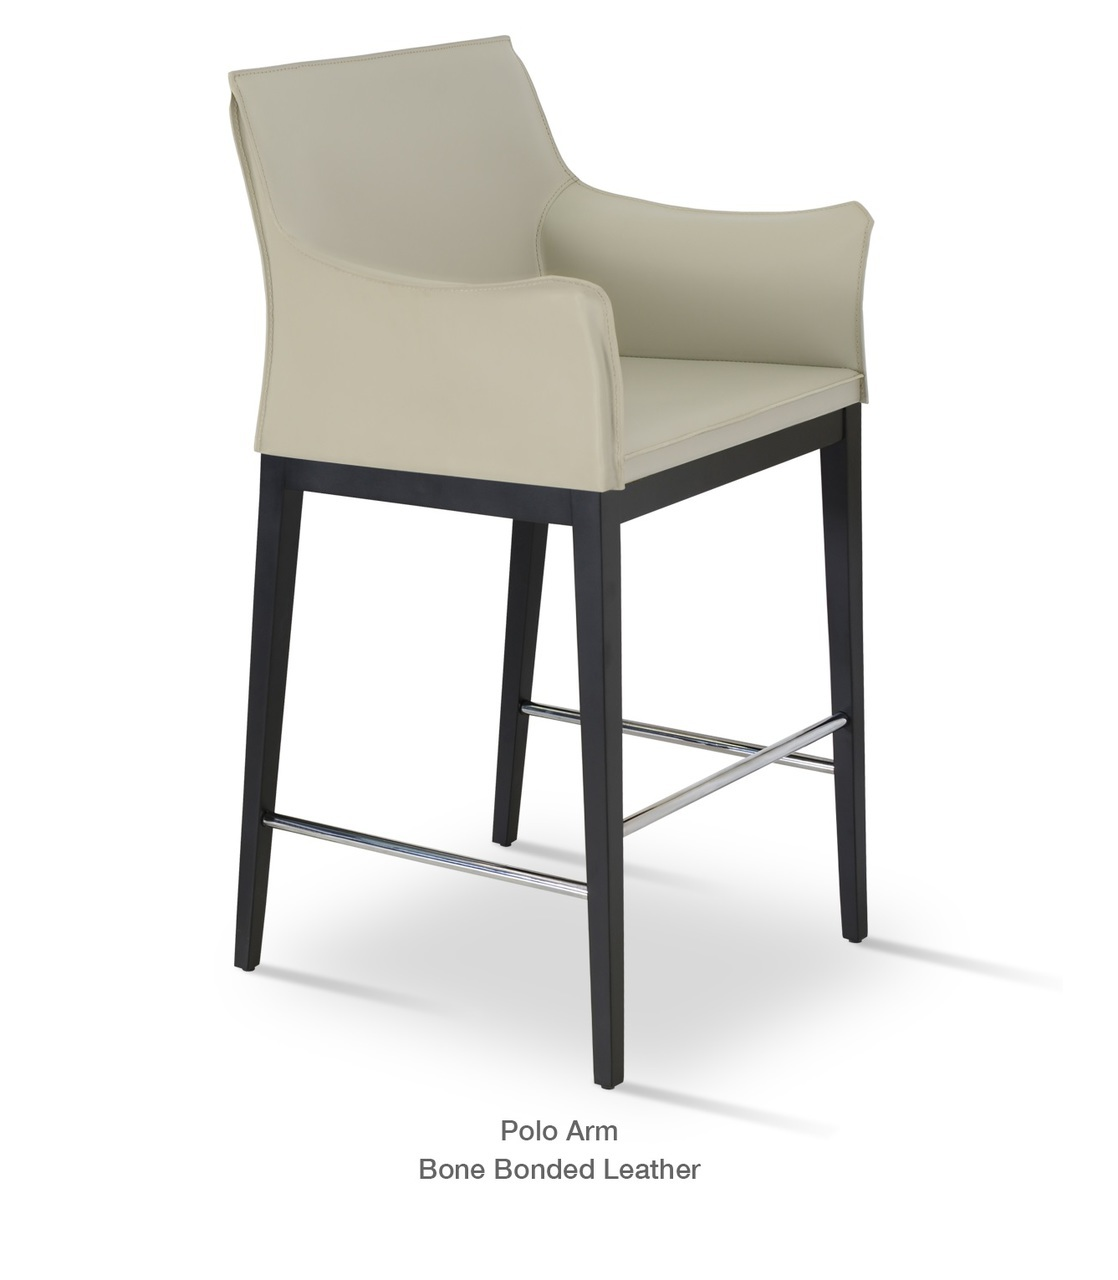 Wonderful image of Bar Stools & Counter Stools Page 7 with #746E57 color and 1118x1280 pixels